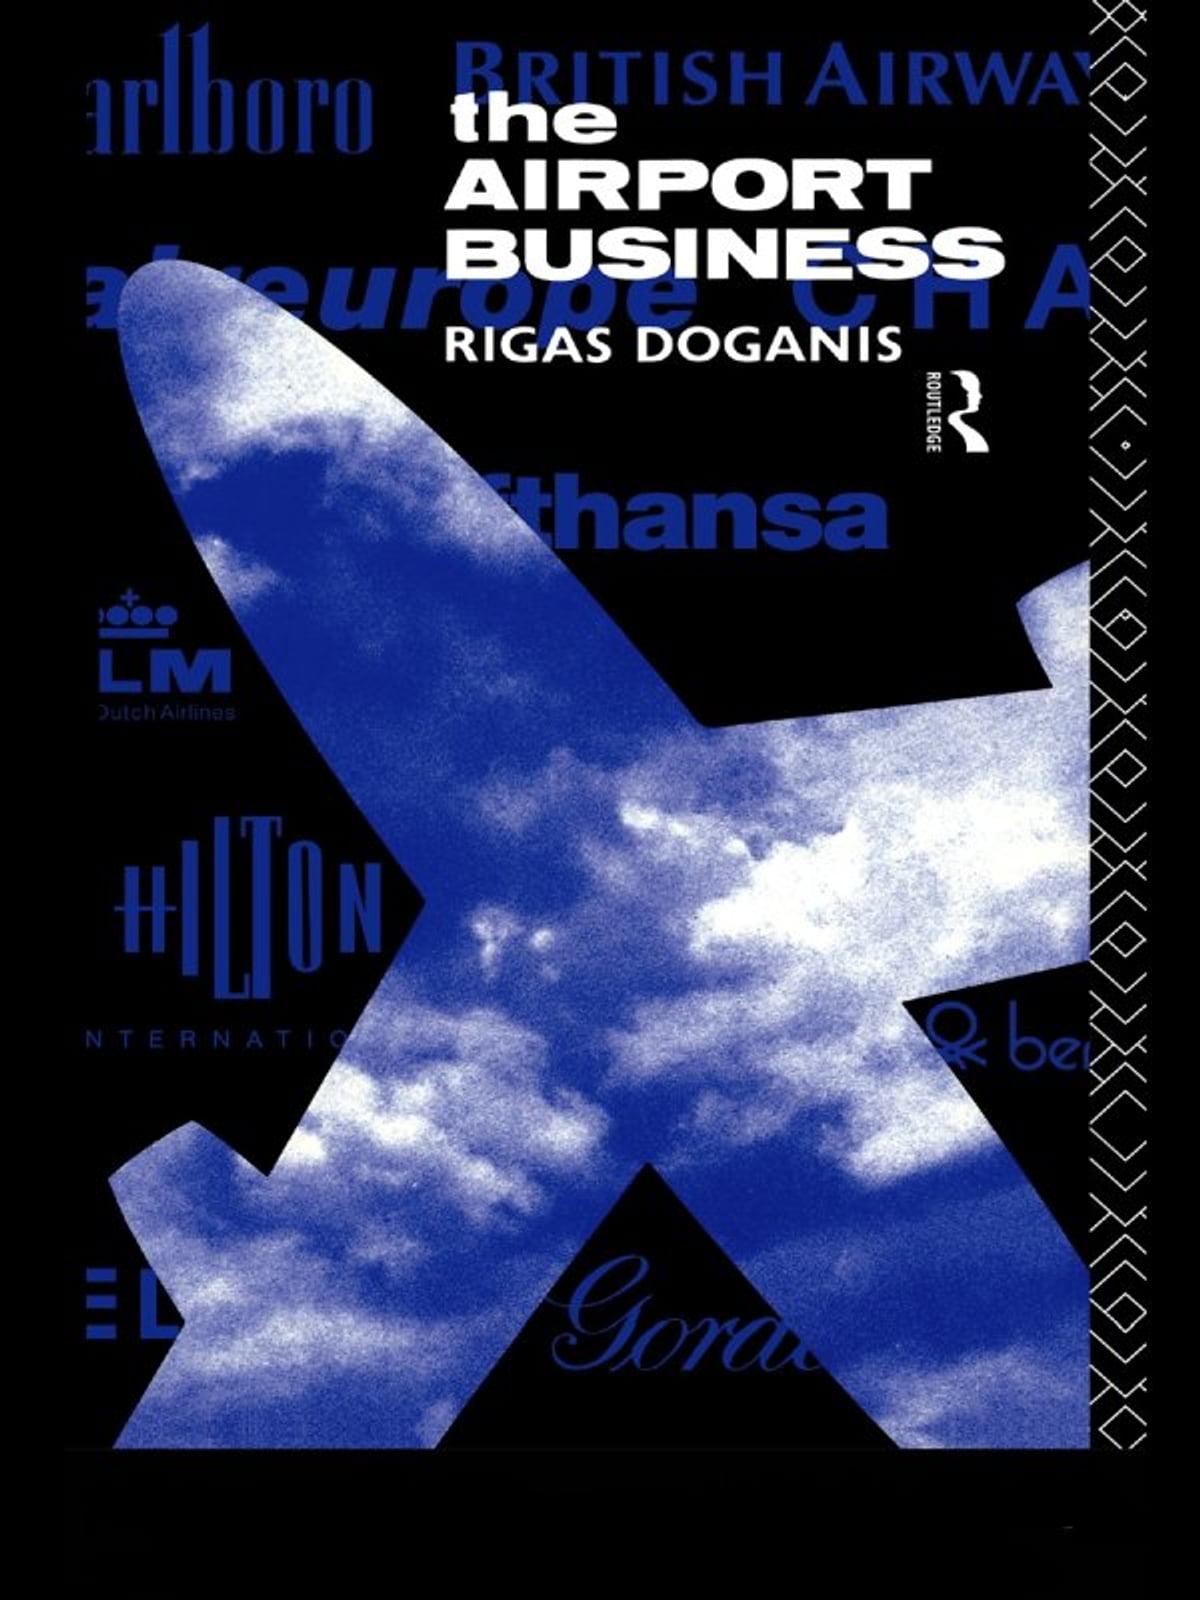 the airline business doganis rigas